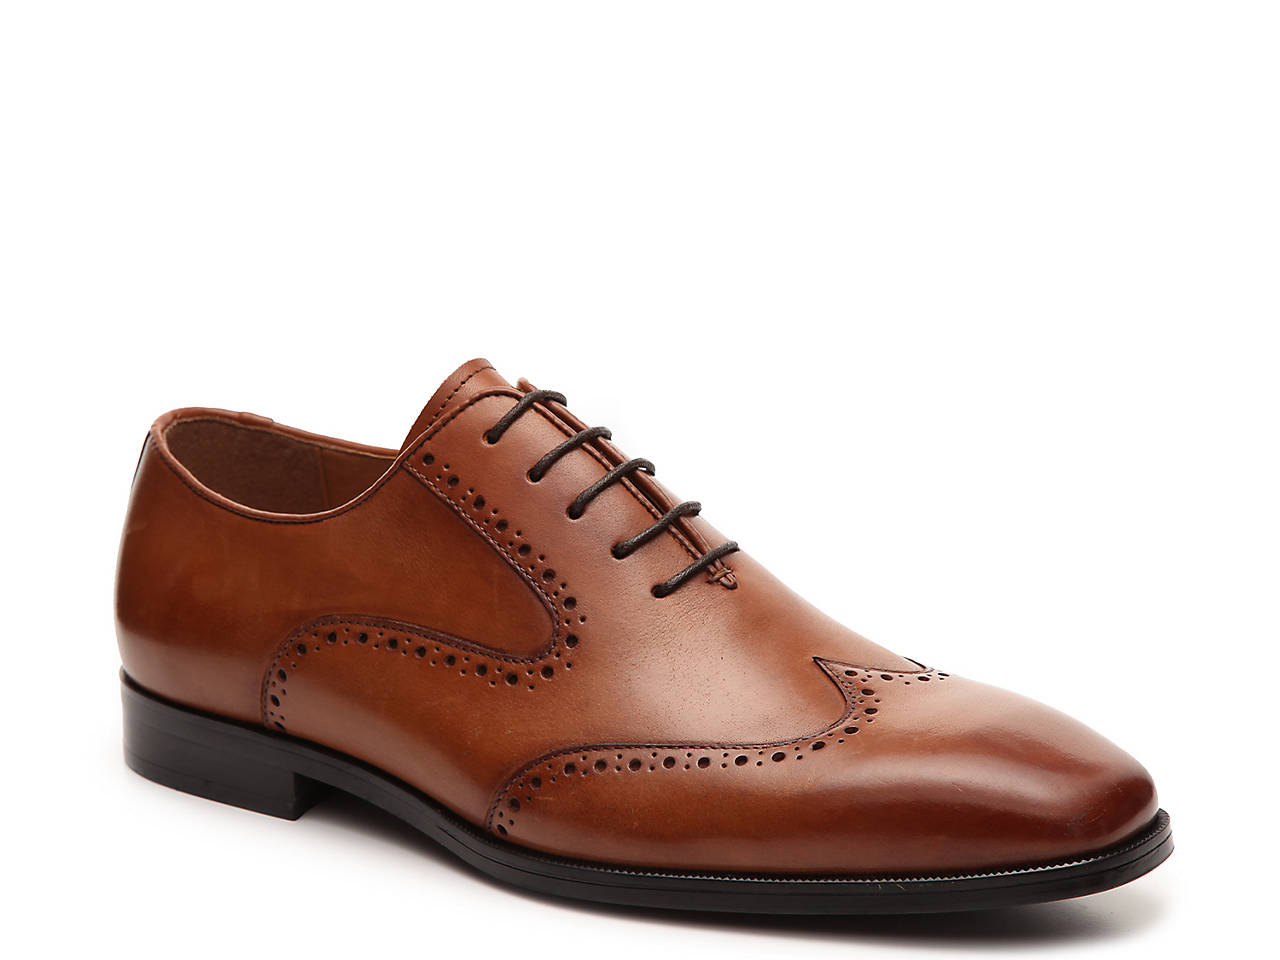 6566401bbe9 Injust Wingtip Oxford